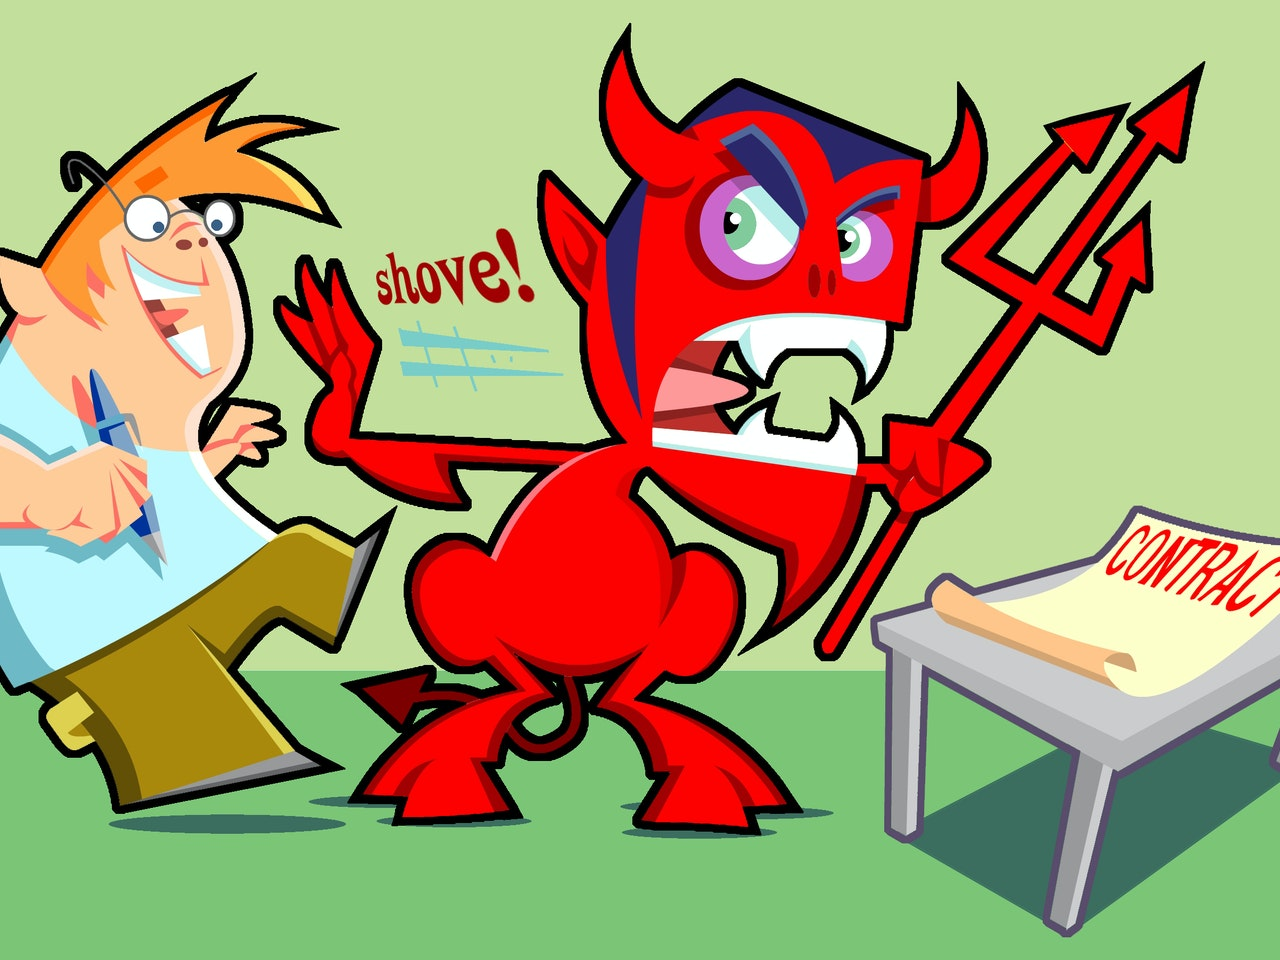 DEVIL demonic hell contract funny happy humorous comical colourful graphic cartoon